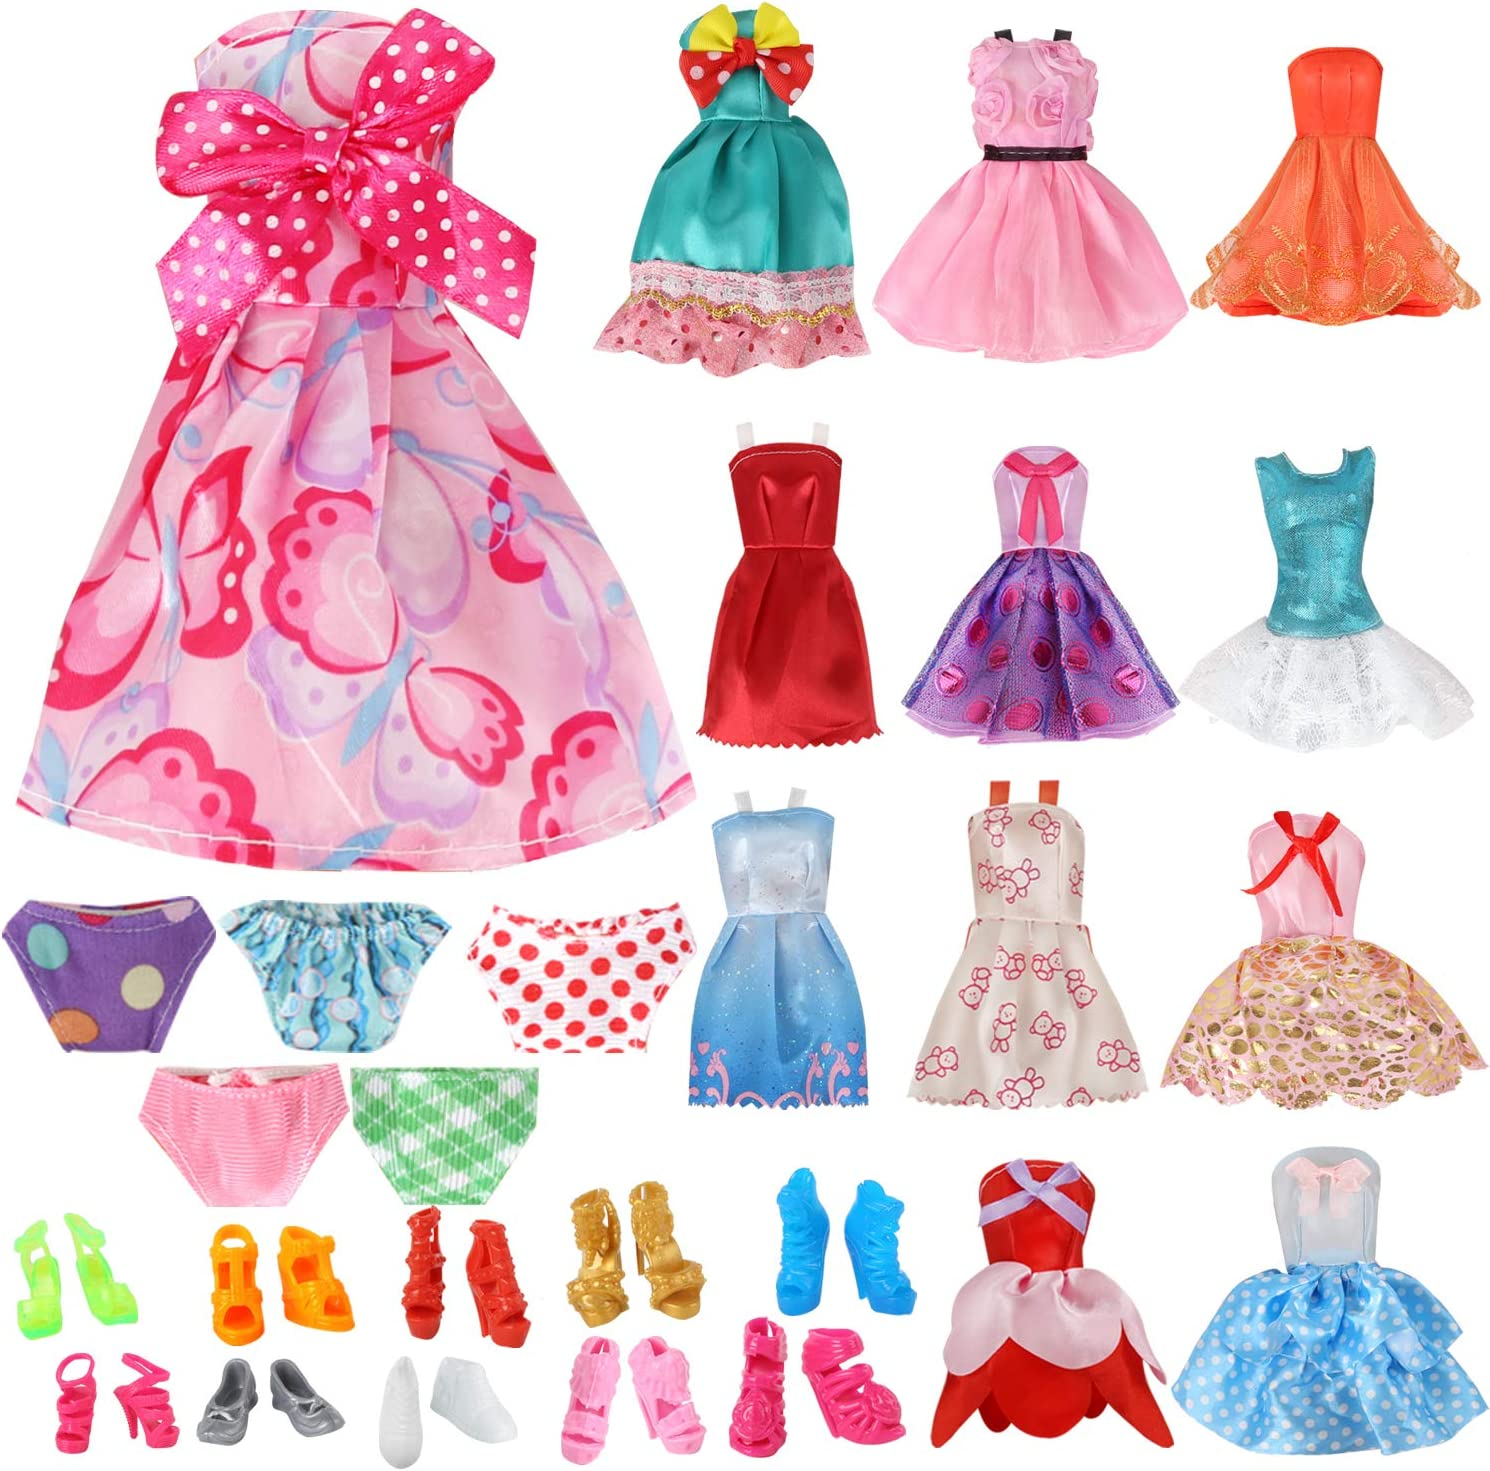 OUFOTAT Doll Clothes for 11.5 Popularity Pcs Very popular Girl 27 Inch